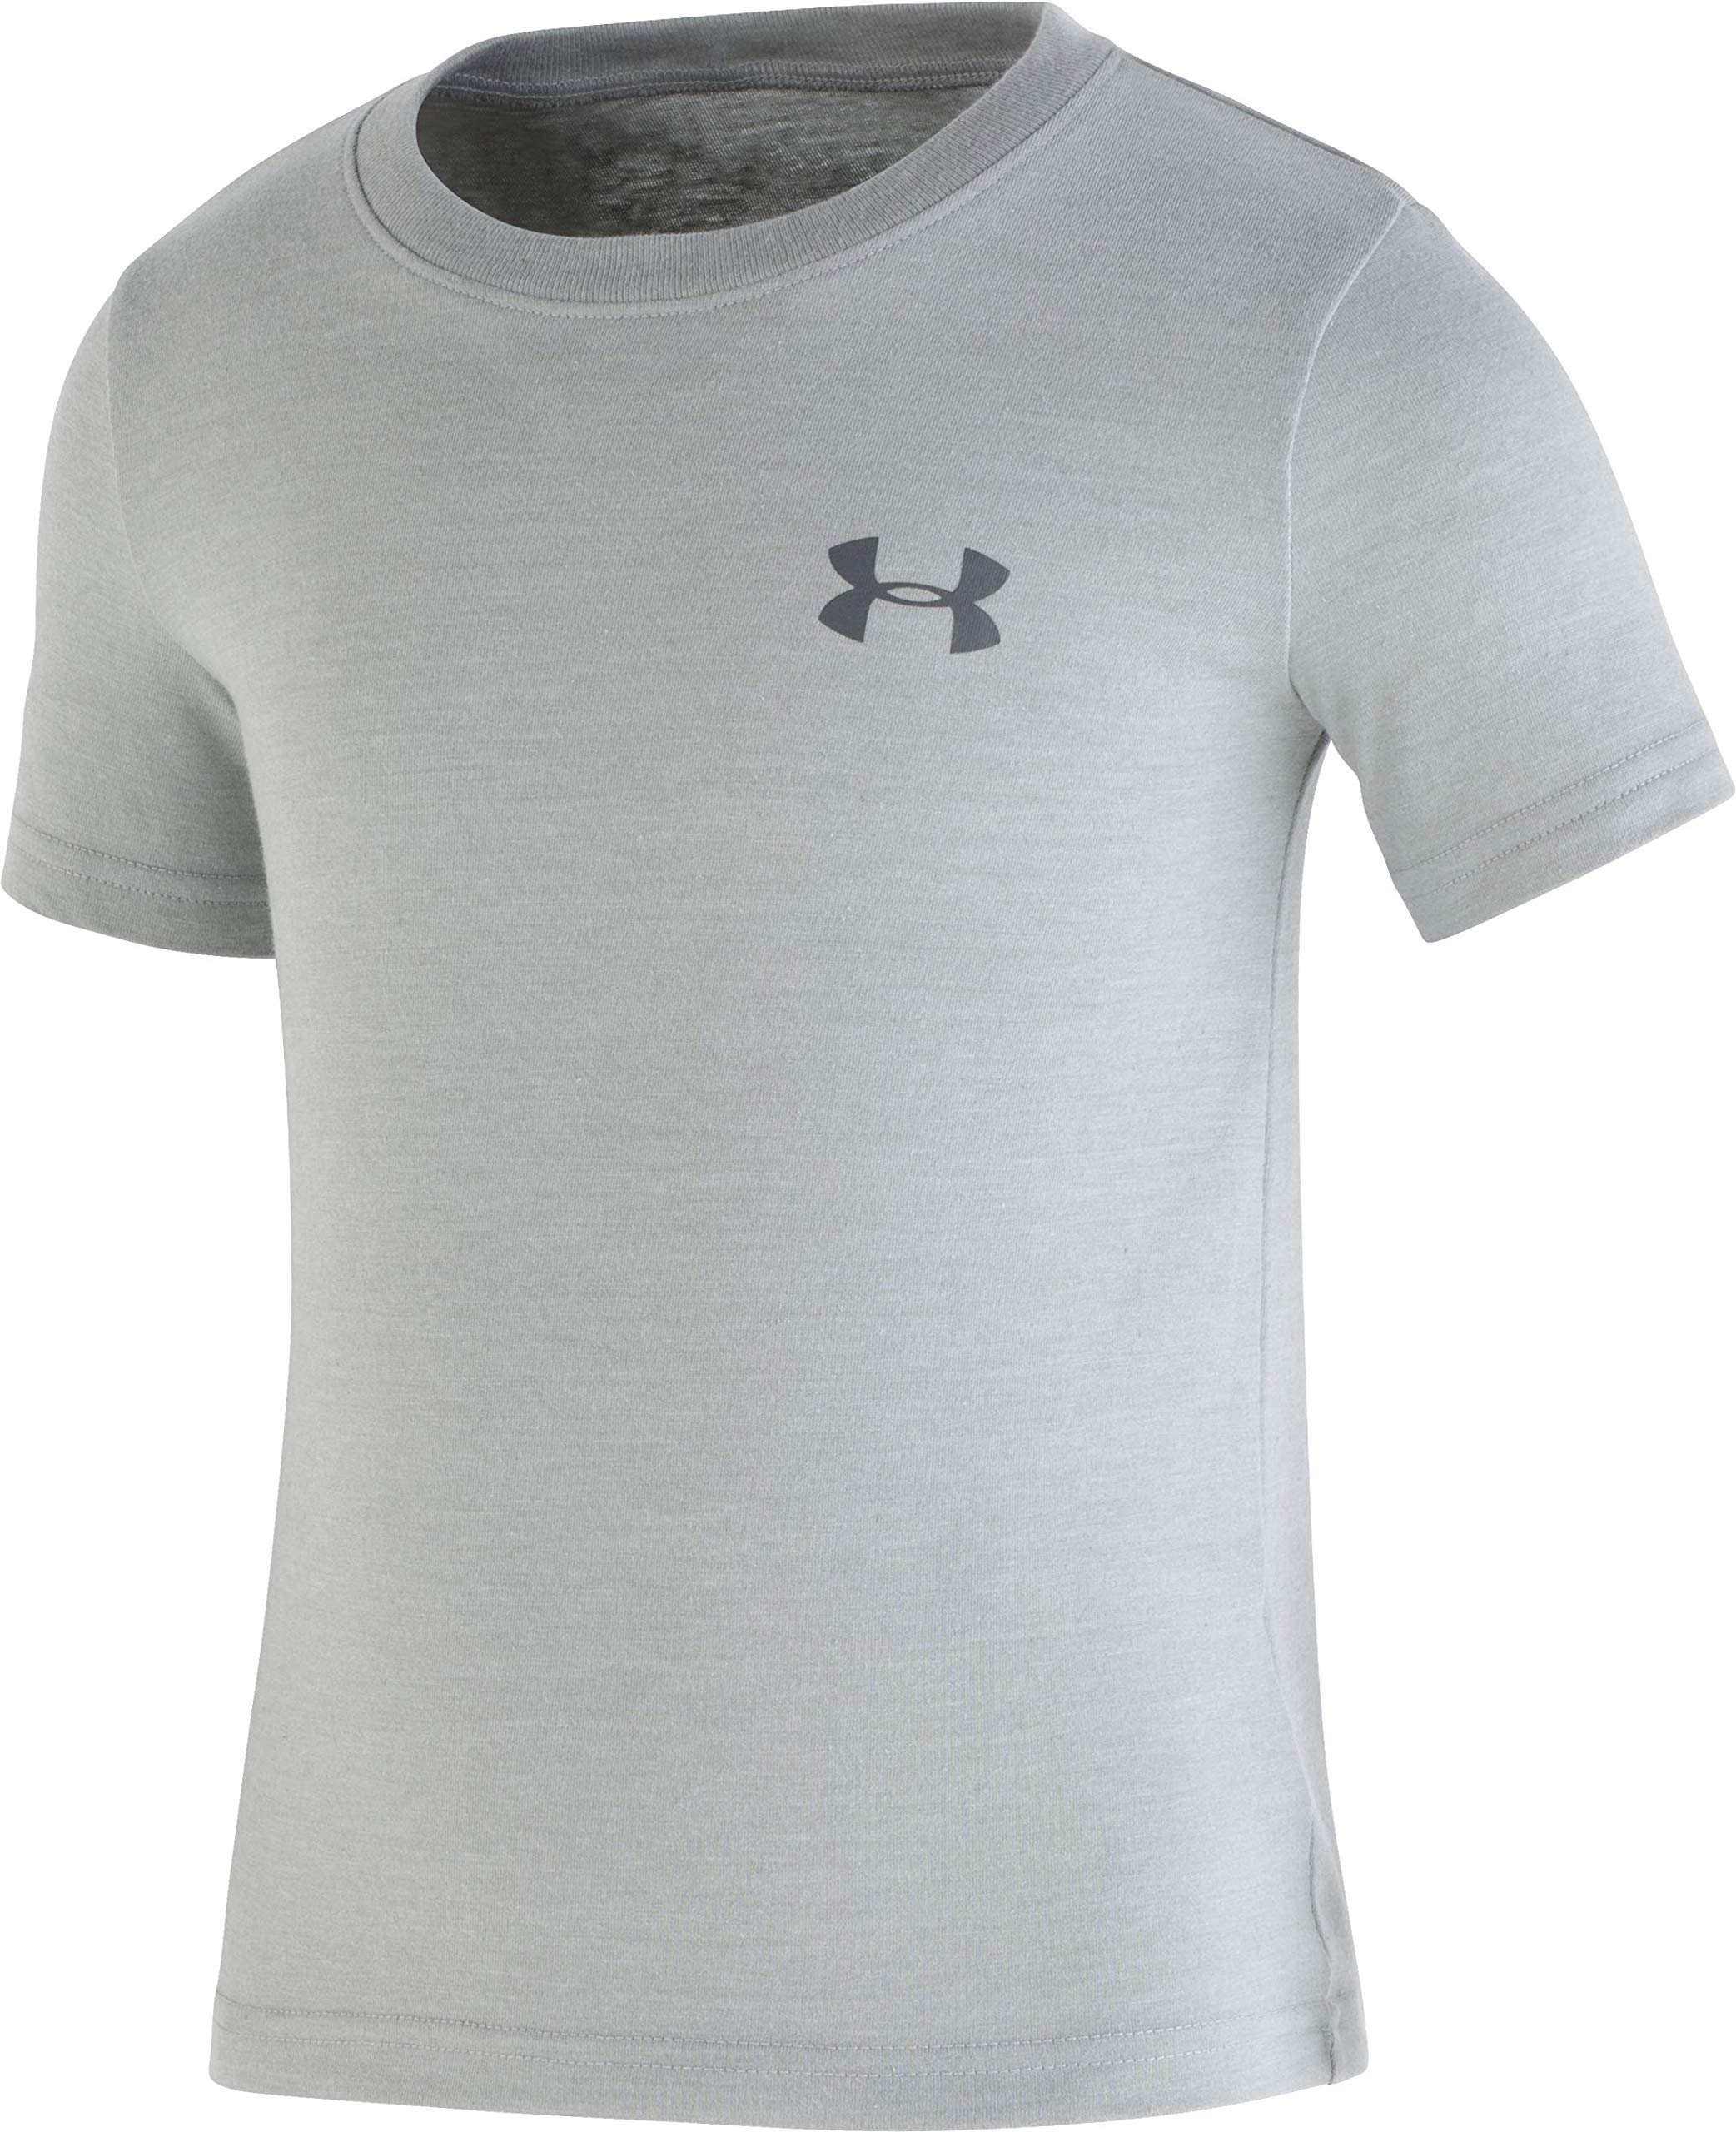 Under Armour Boys' Little Triblend T-Shirt, Moderate Gray-S19, 7